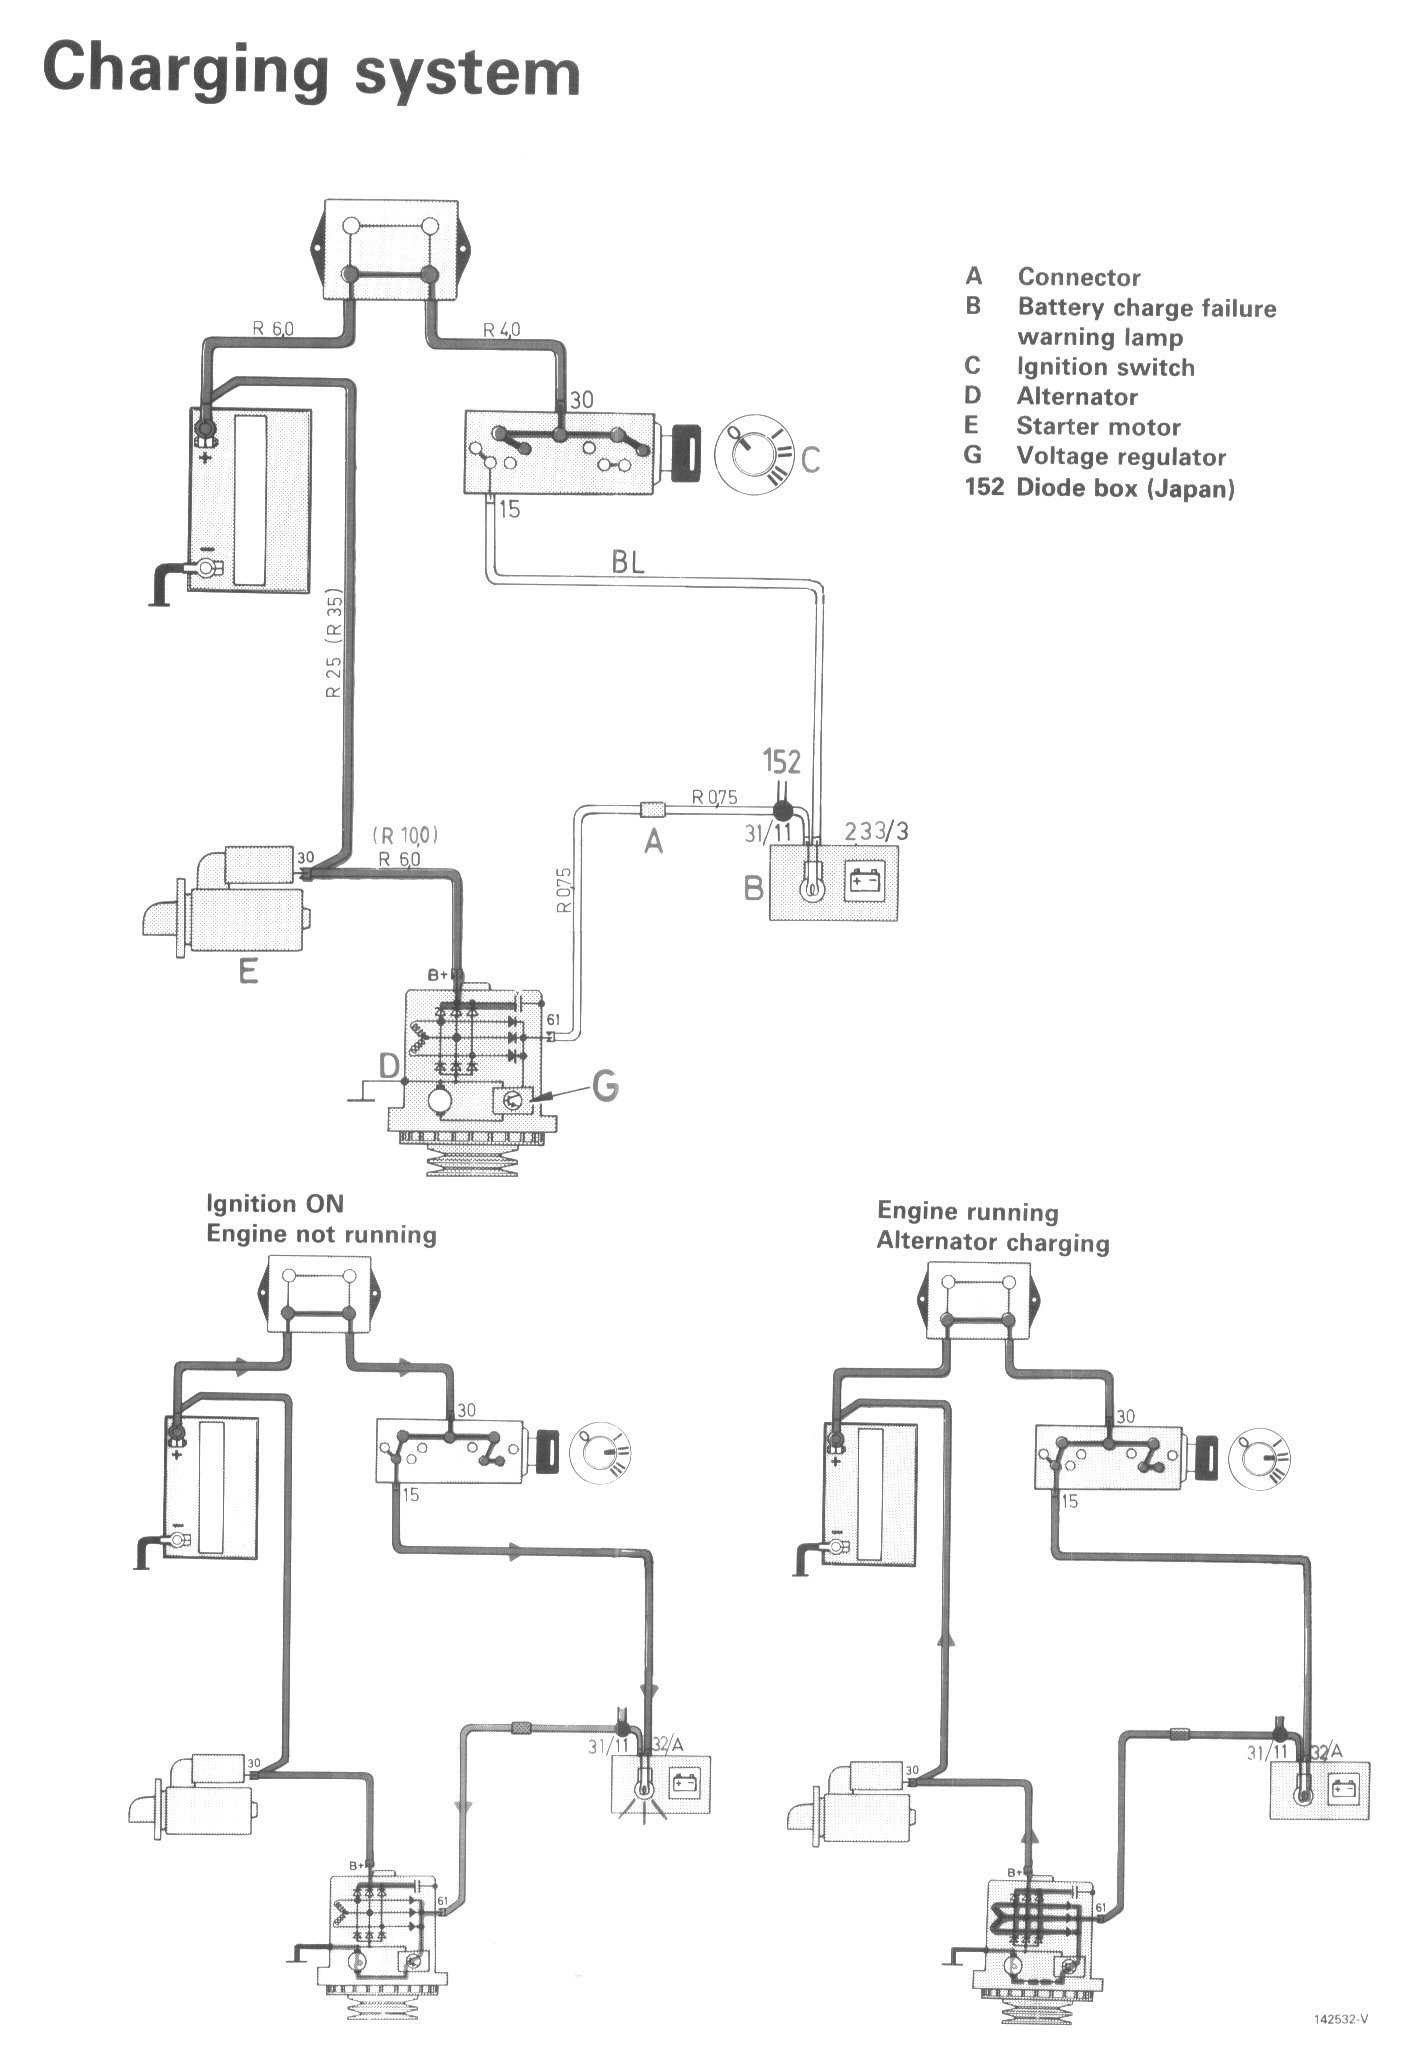 1990 Volvo 240 Alternator Wiring Diagram Full Hd Version Wiring Diagram Sadadiagram As4a Fr